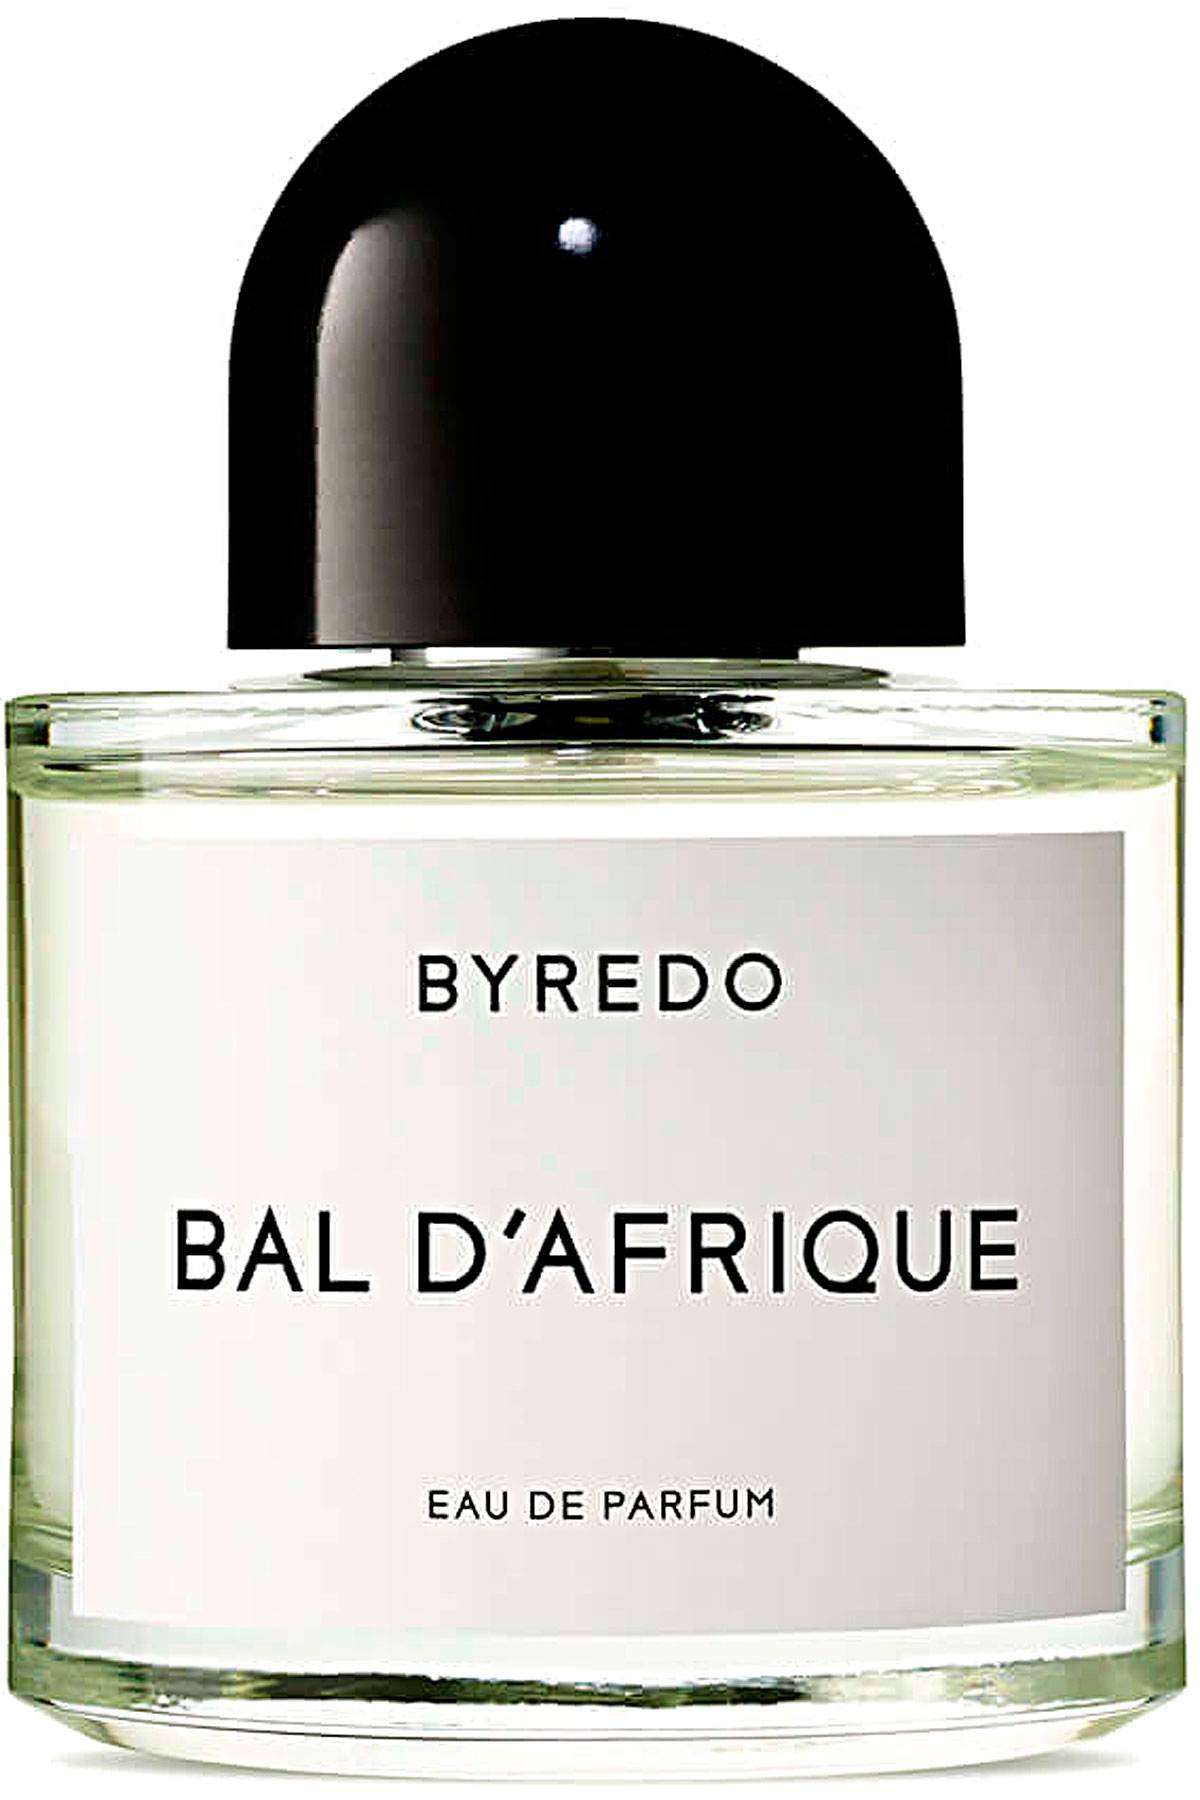 Byredo Fragrances for Men, Bal D Afrique - Eau De Parfum - 100 Ml, 2019, 100 ml